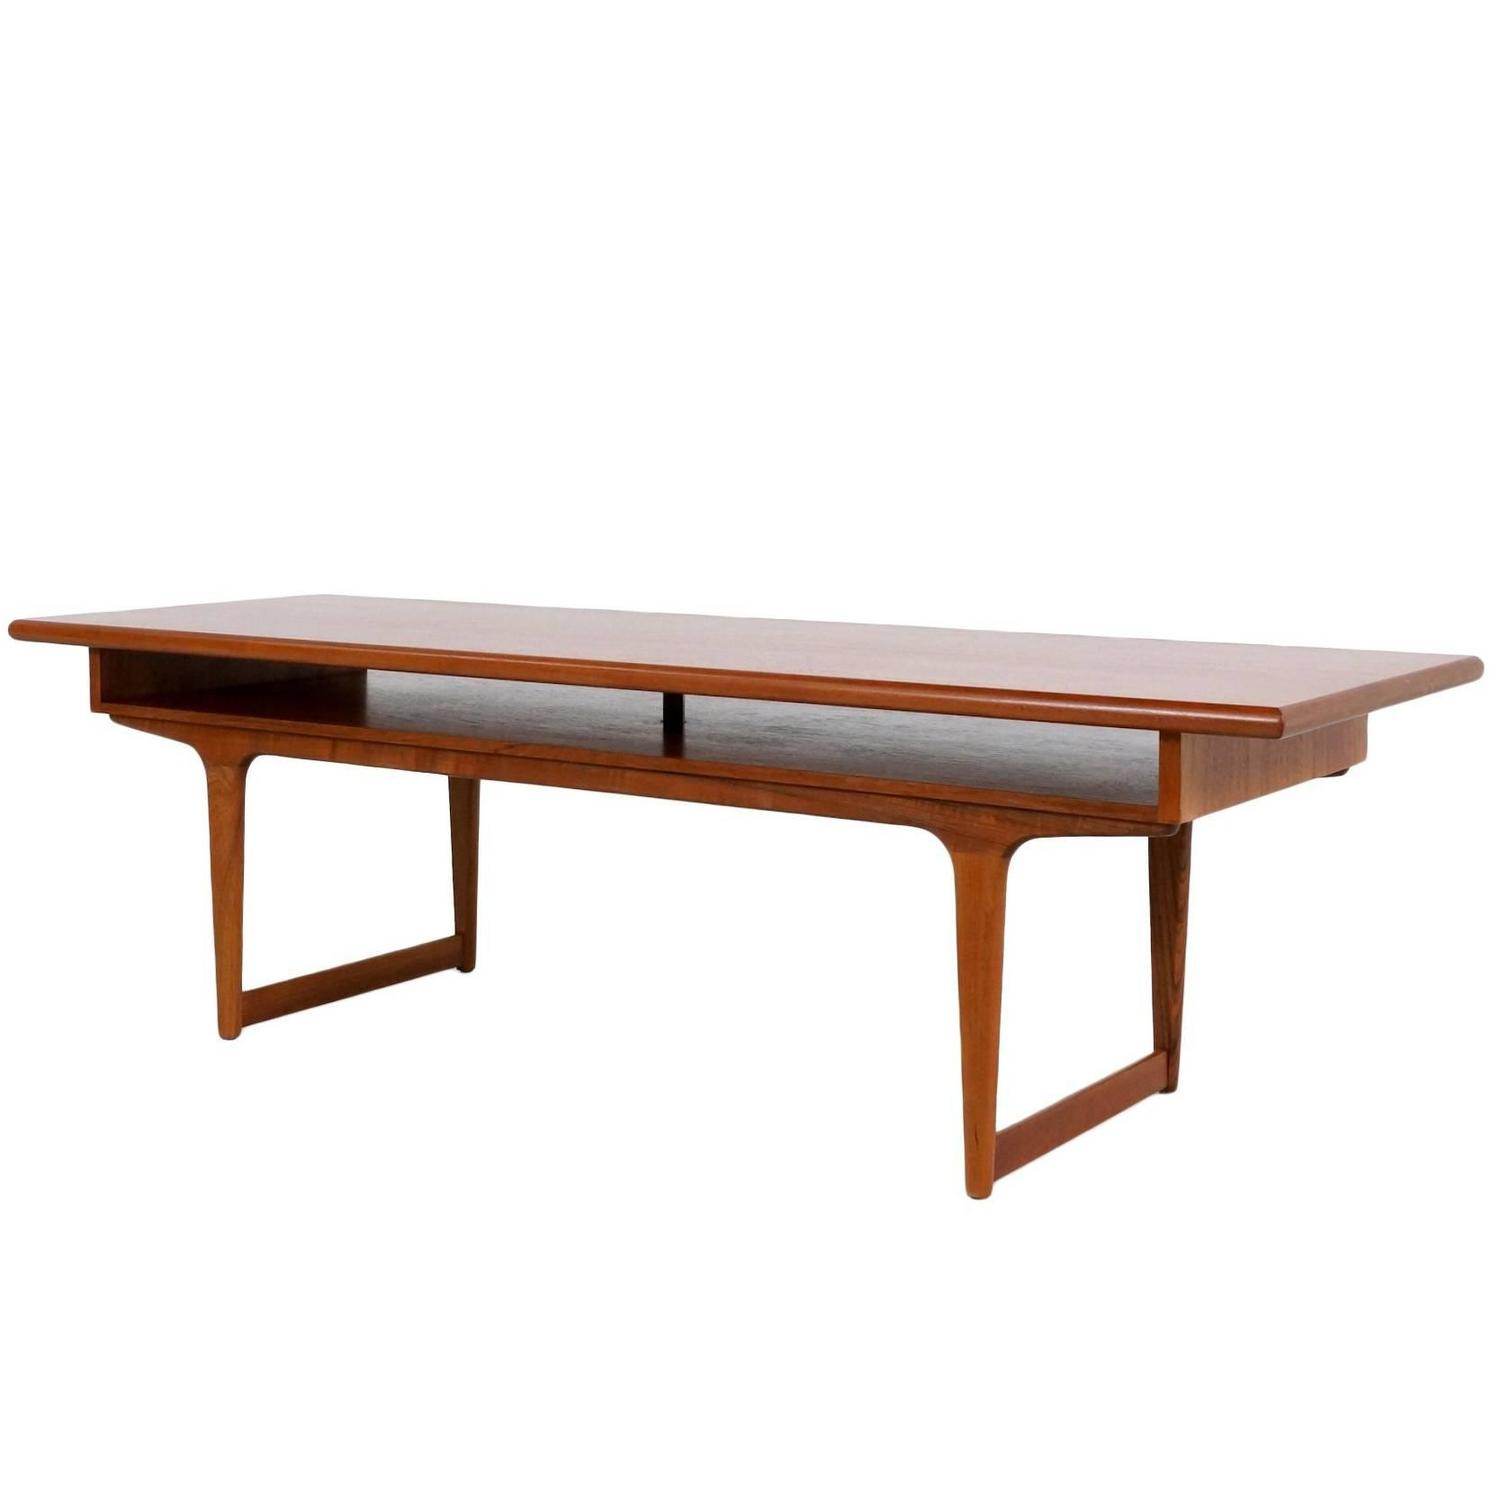 Scandinavian Teak Coffee Table: Large Danish Modern Teak Coffee Table, 1960s For Sale At